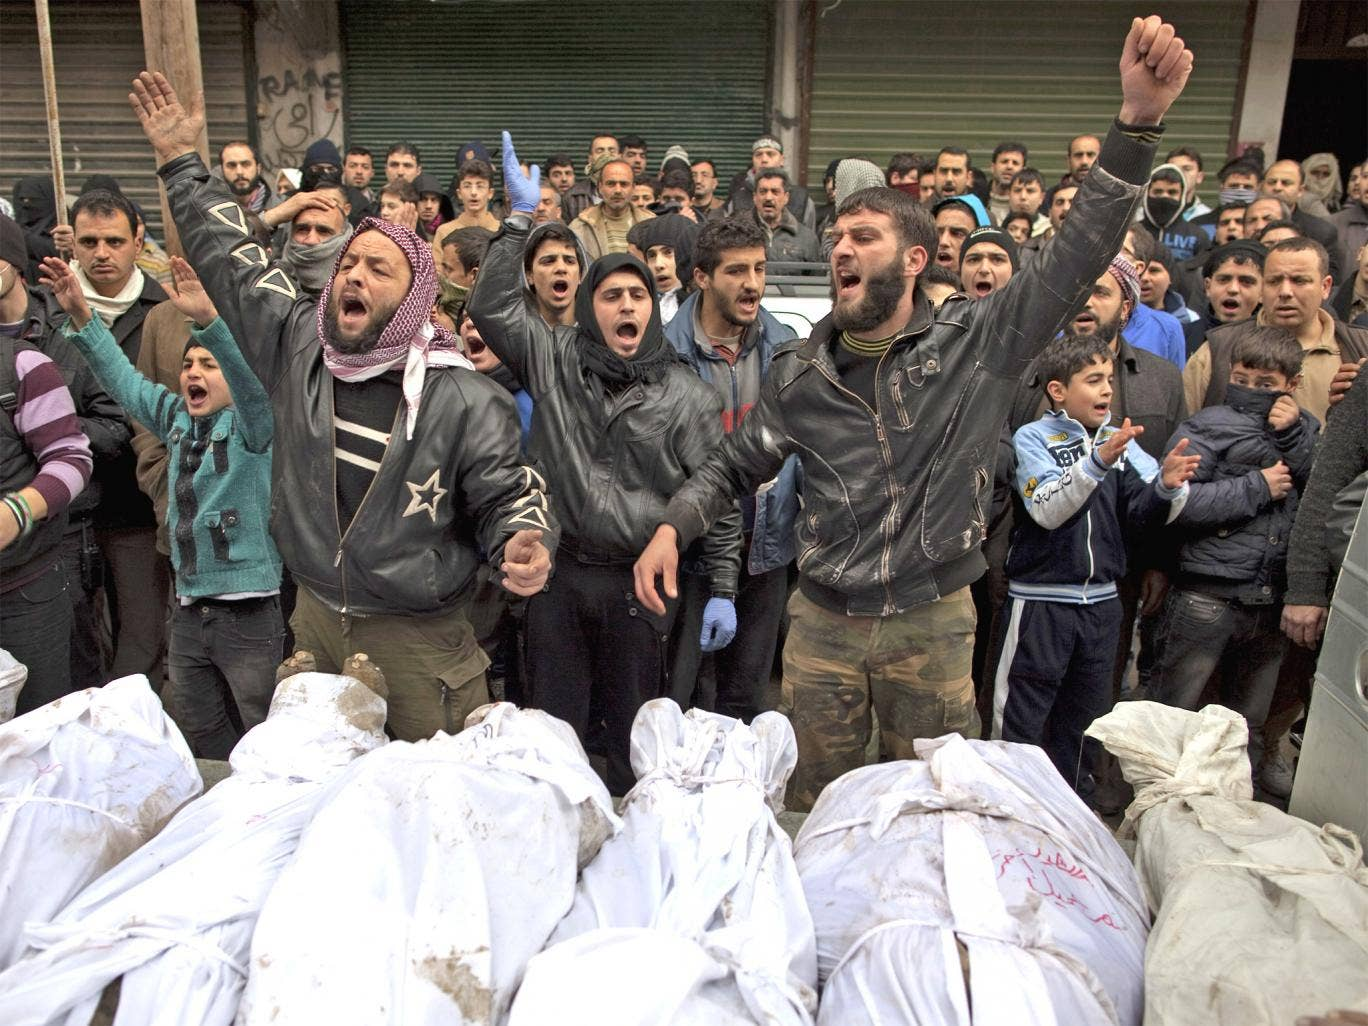 Hundreds of Syrian civilians have lost their lives under the current regime